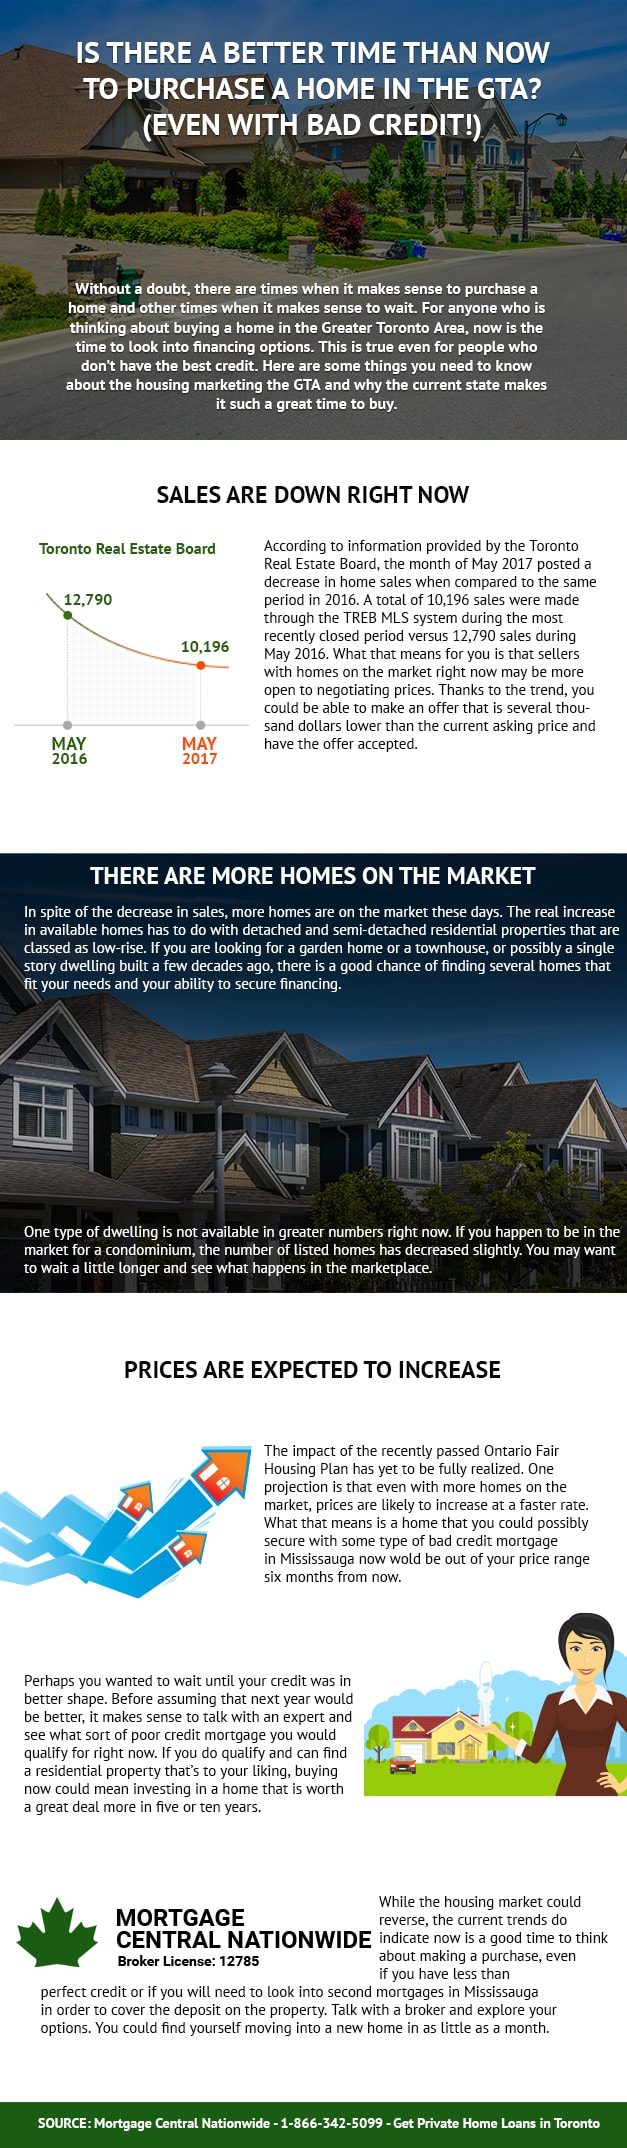 Is There a Better Time Than Now to Purchase a Home in the GTA? (Even With Bad Credit!)